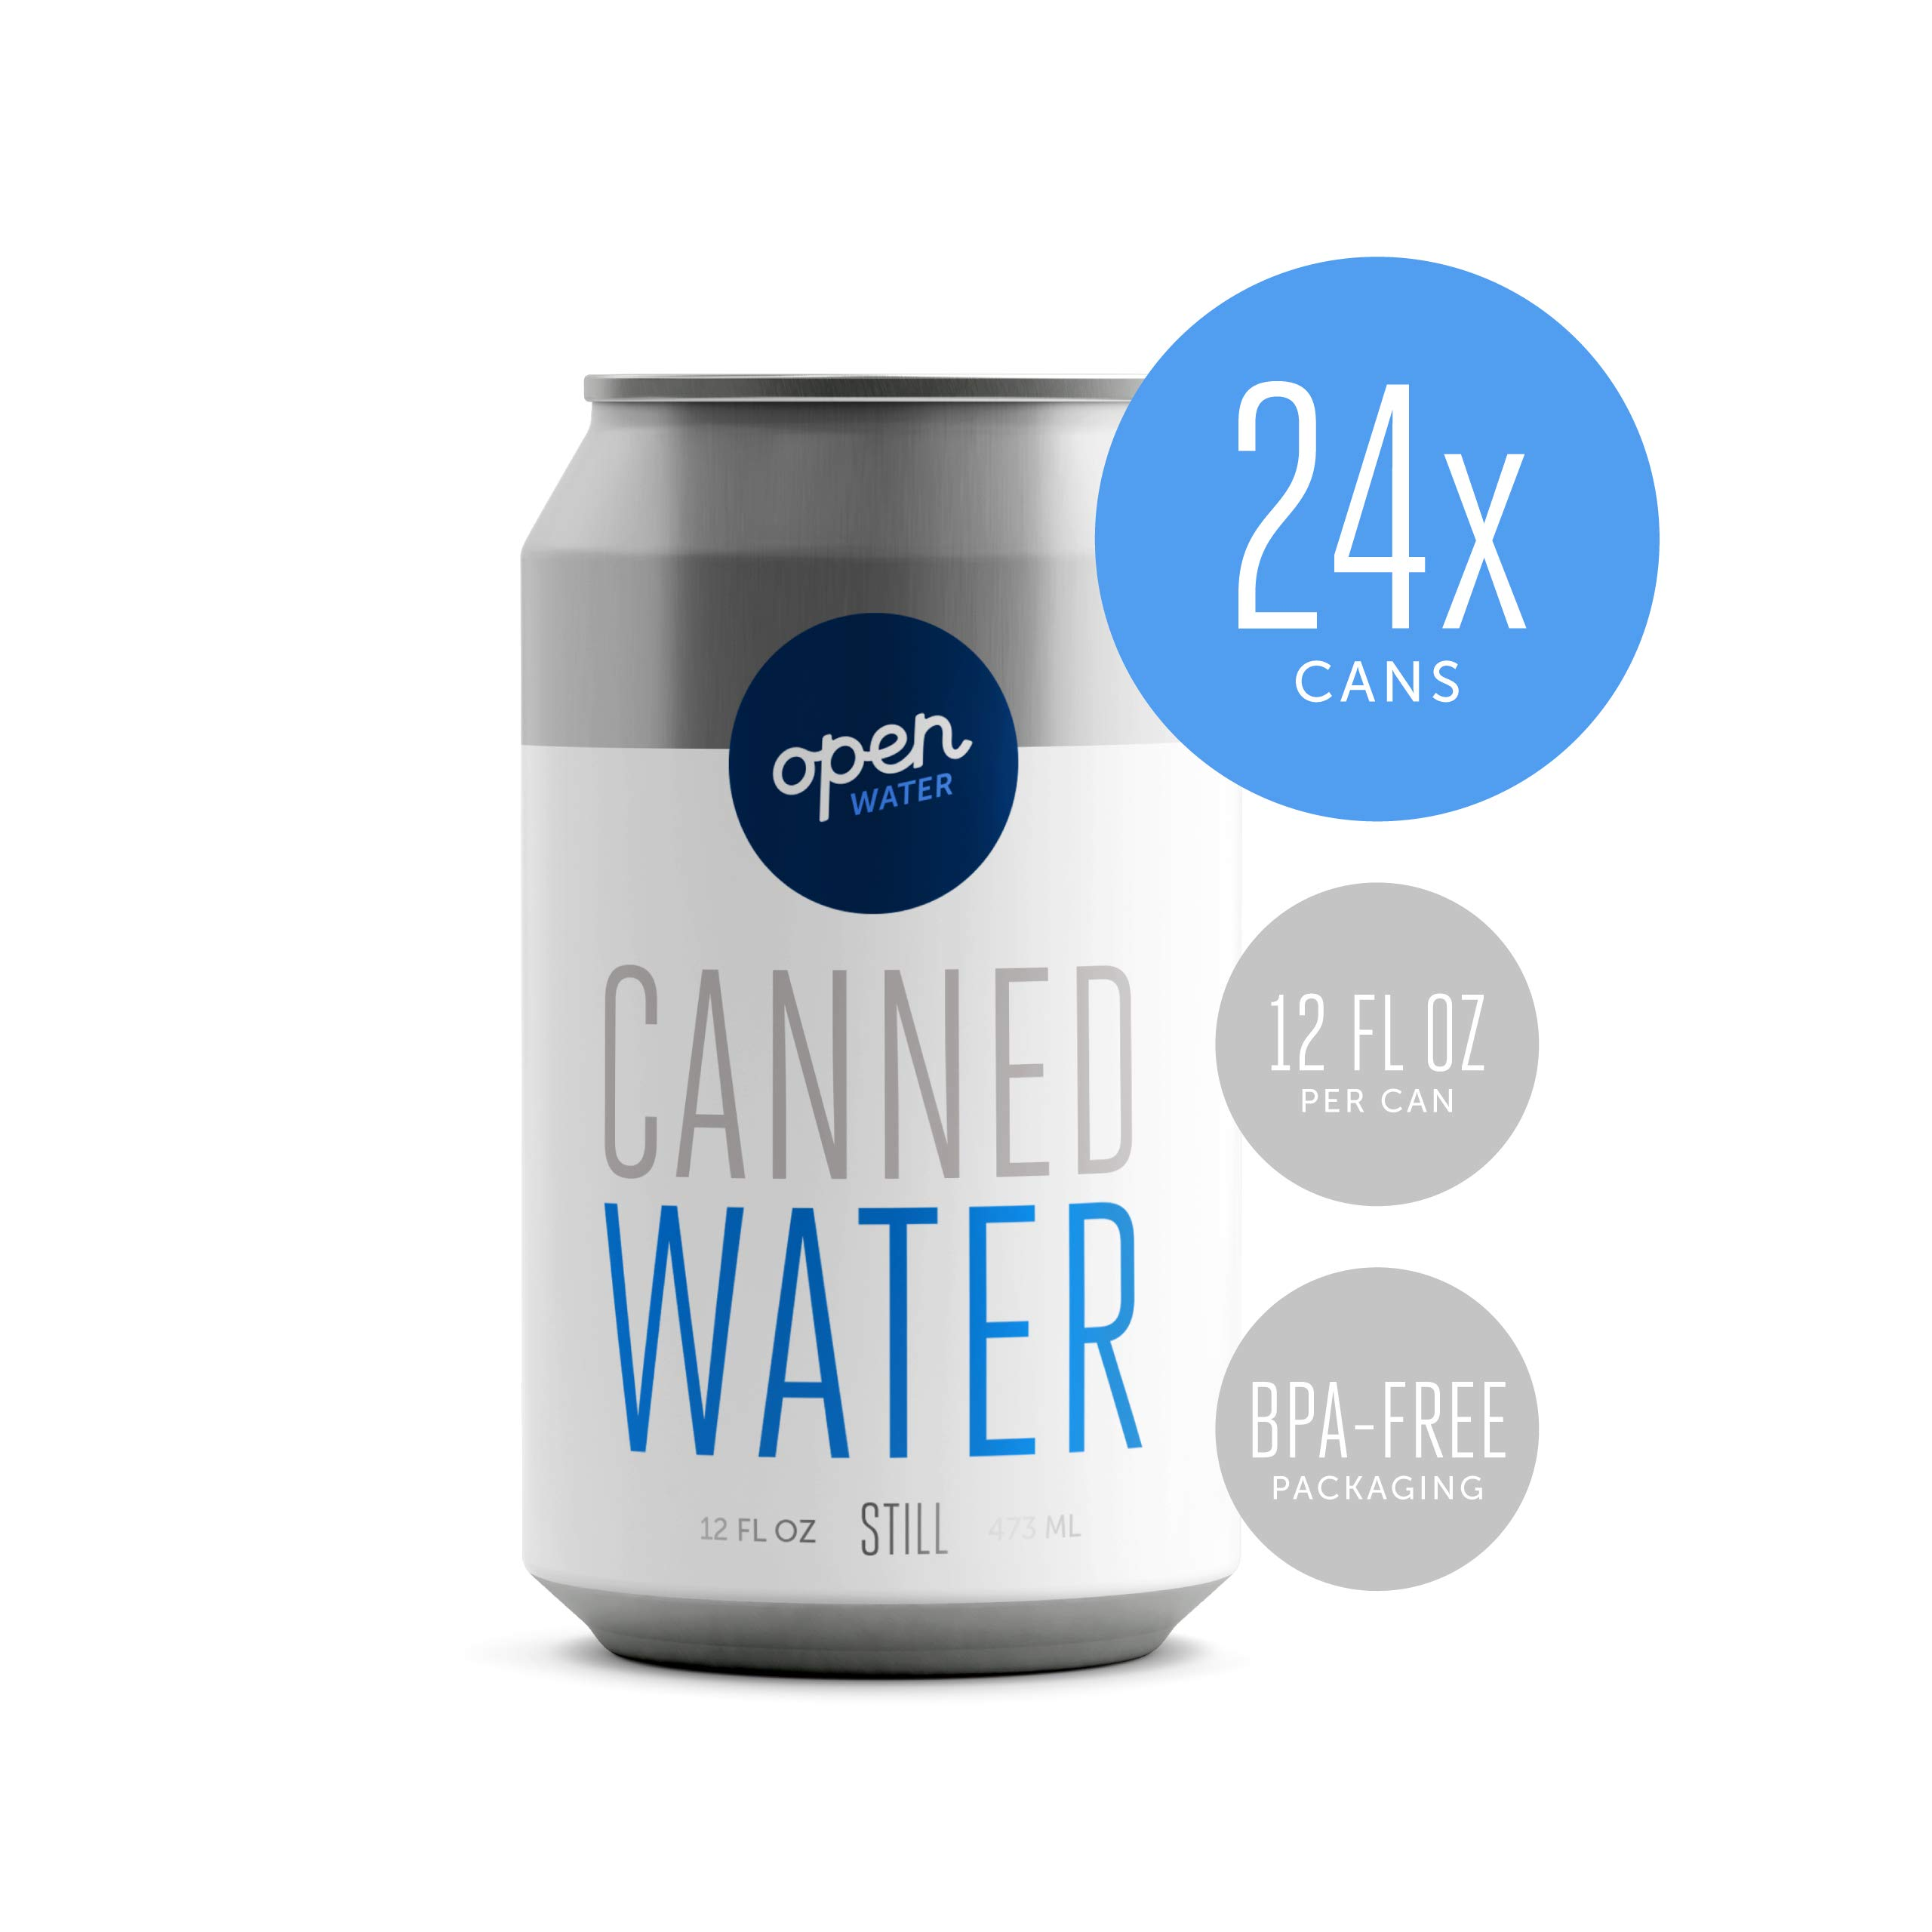 Open Water Still Canned Water with Electrolytes in 12-oz Aluminum Cans (2 Cases, 24 cans - Still)   BPA-free and Eco friendly